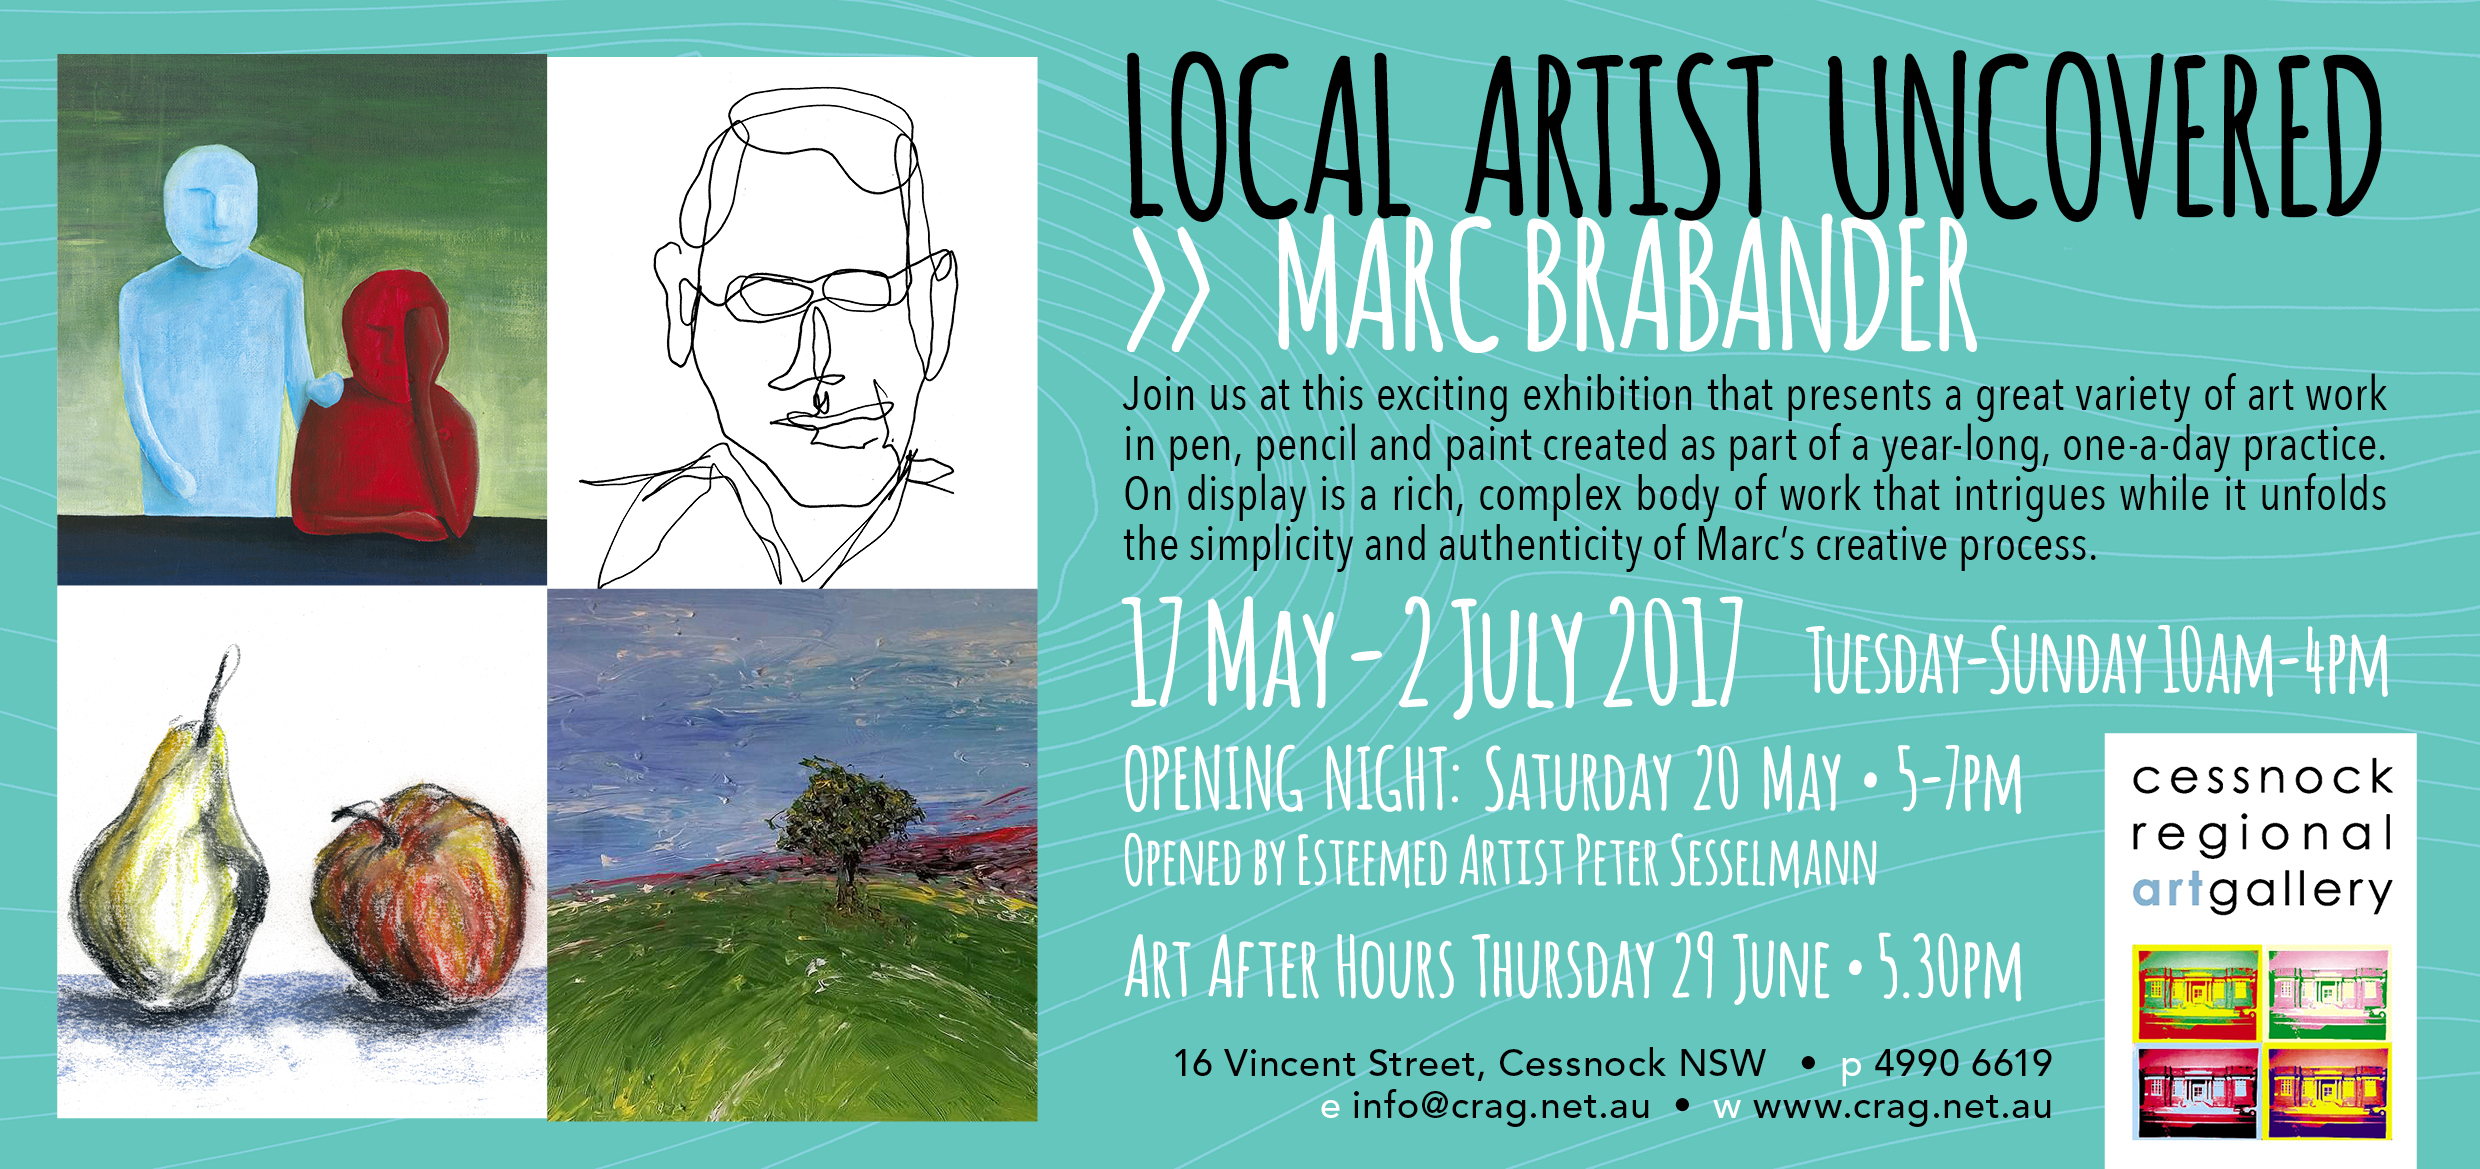 Opening Night  - Local Artist Uncovered works by Marc Brabander